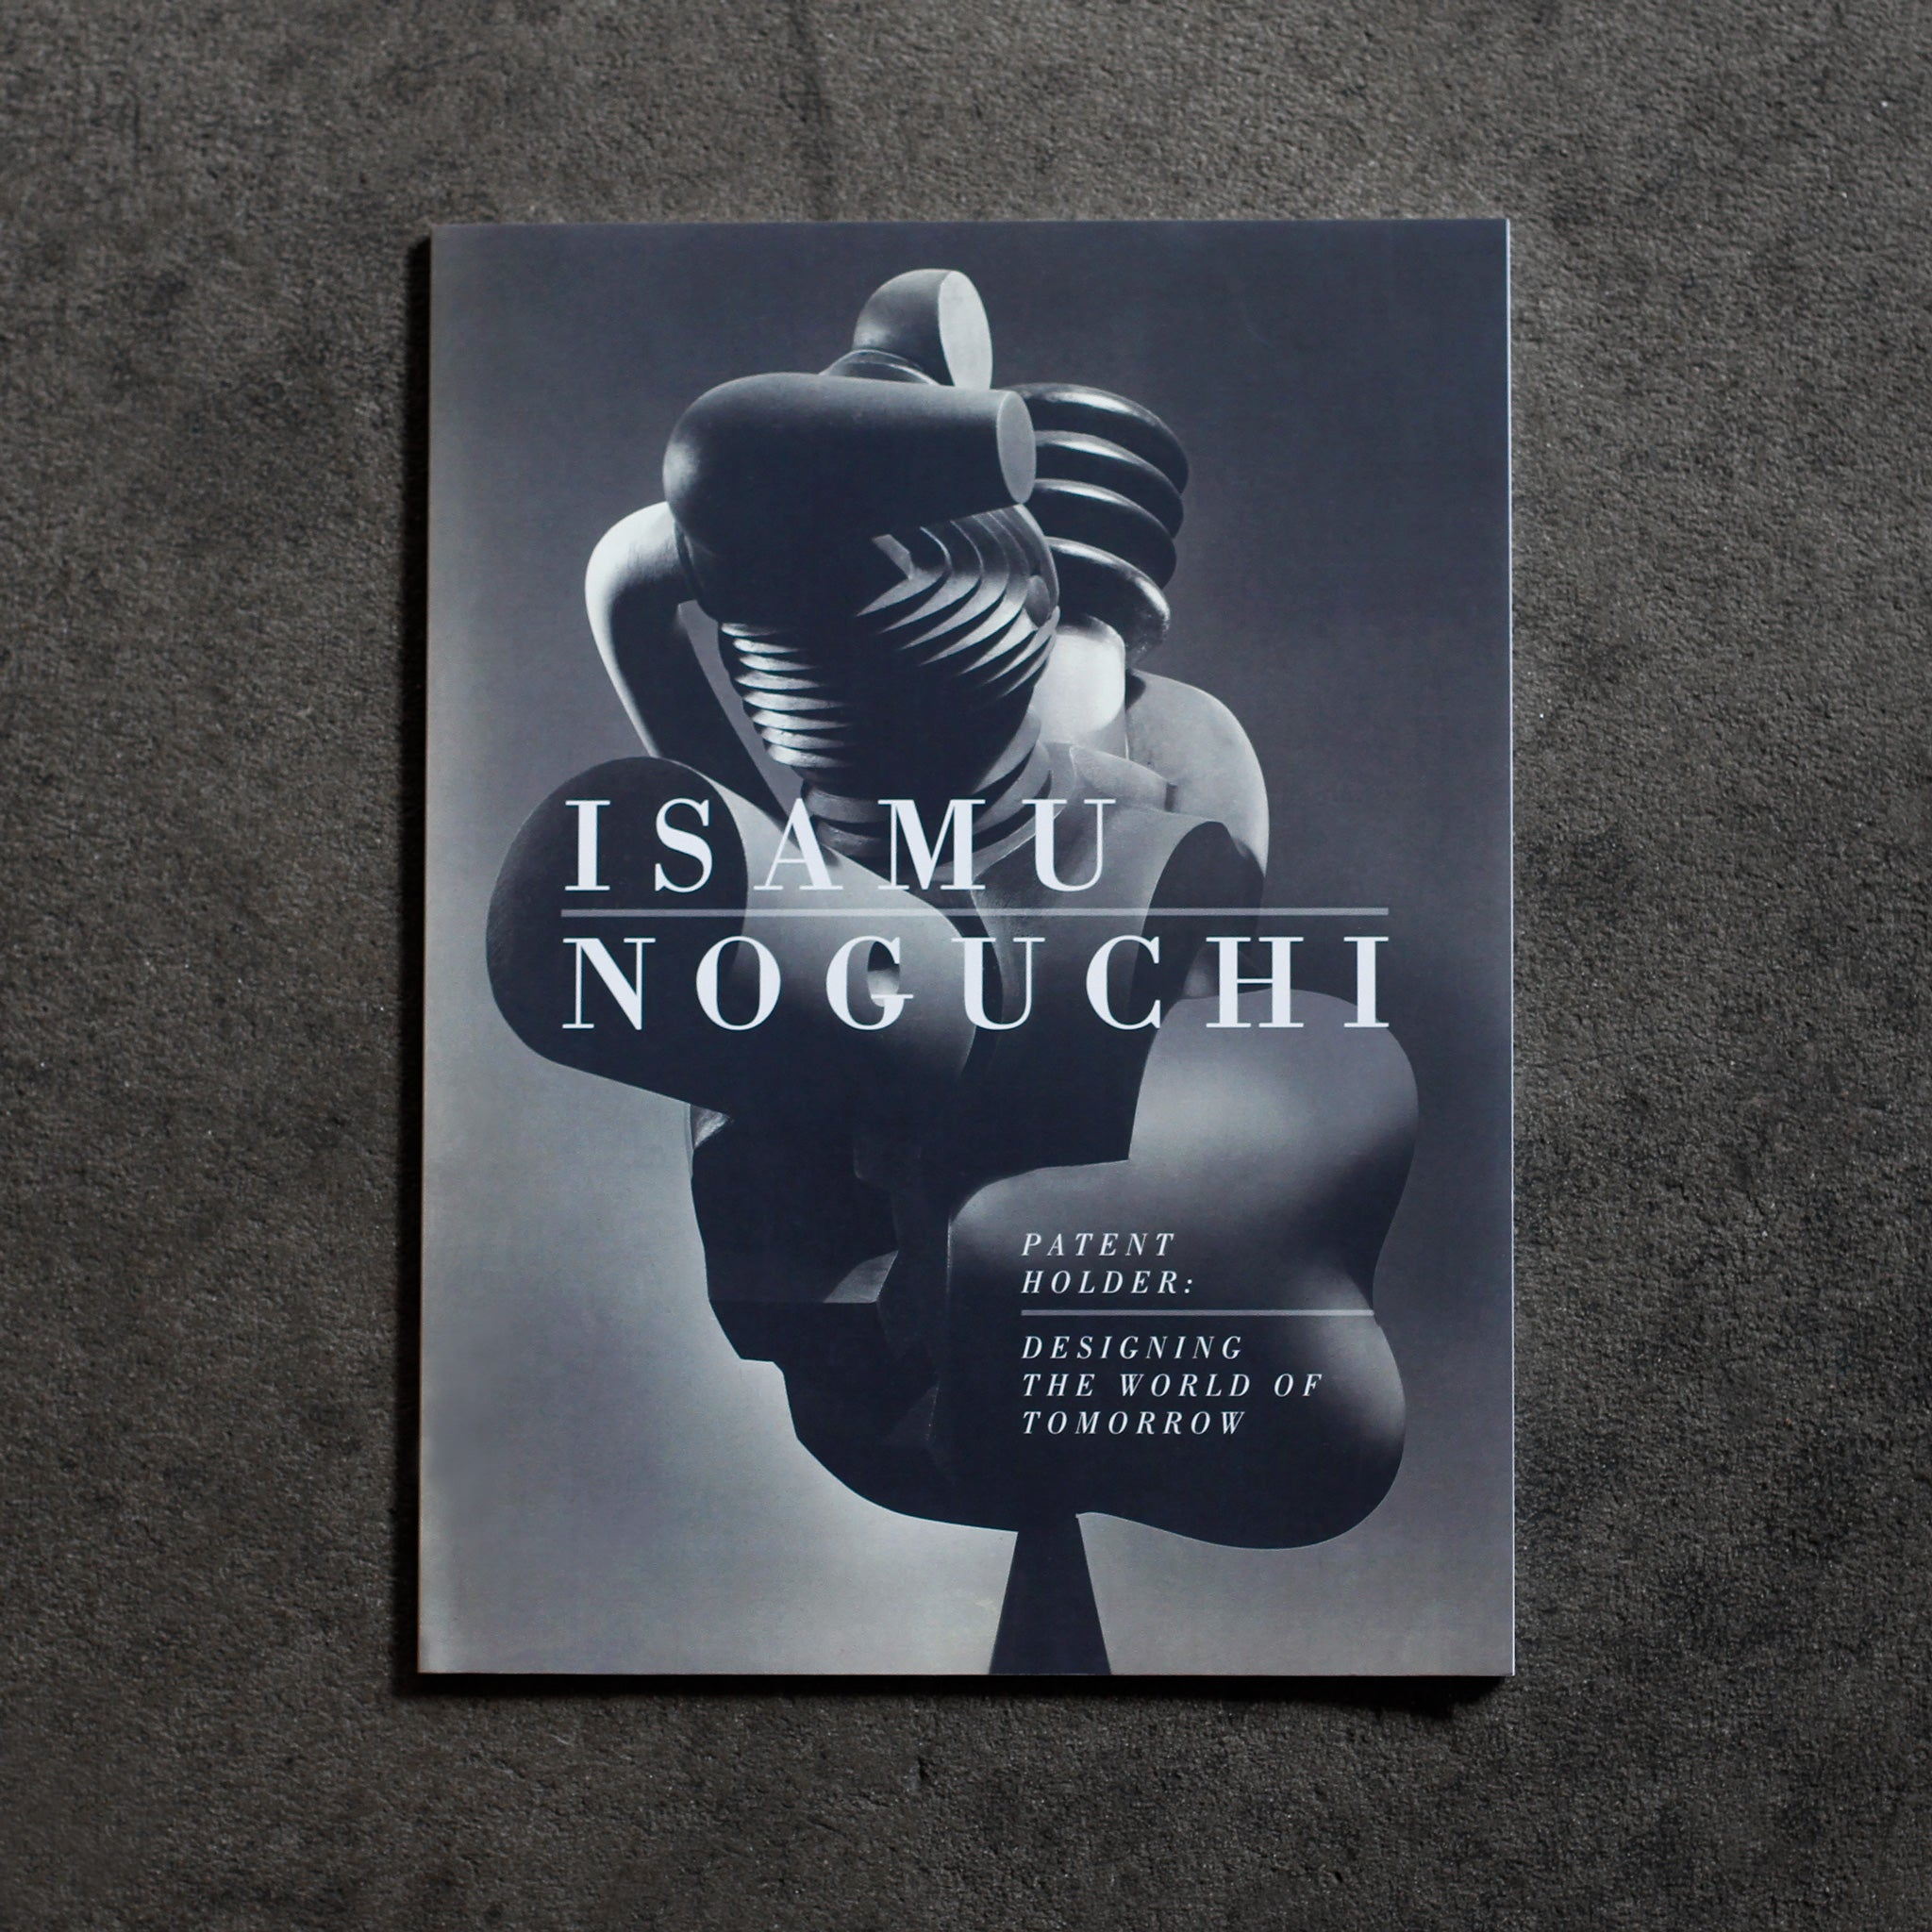 Cover of 'Isamu Noguchi, Patent Holder.' Detail photograph of Isamu Noguchi's 1000 Horsepower Heart, a plaster sculpture of a biomorphic engine. White headline text runs over the image, 'Isamu Noguchi' 'Patent Holder: Designing for the World of Tomorrow'